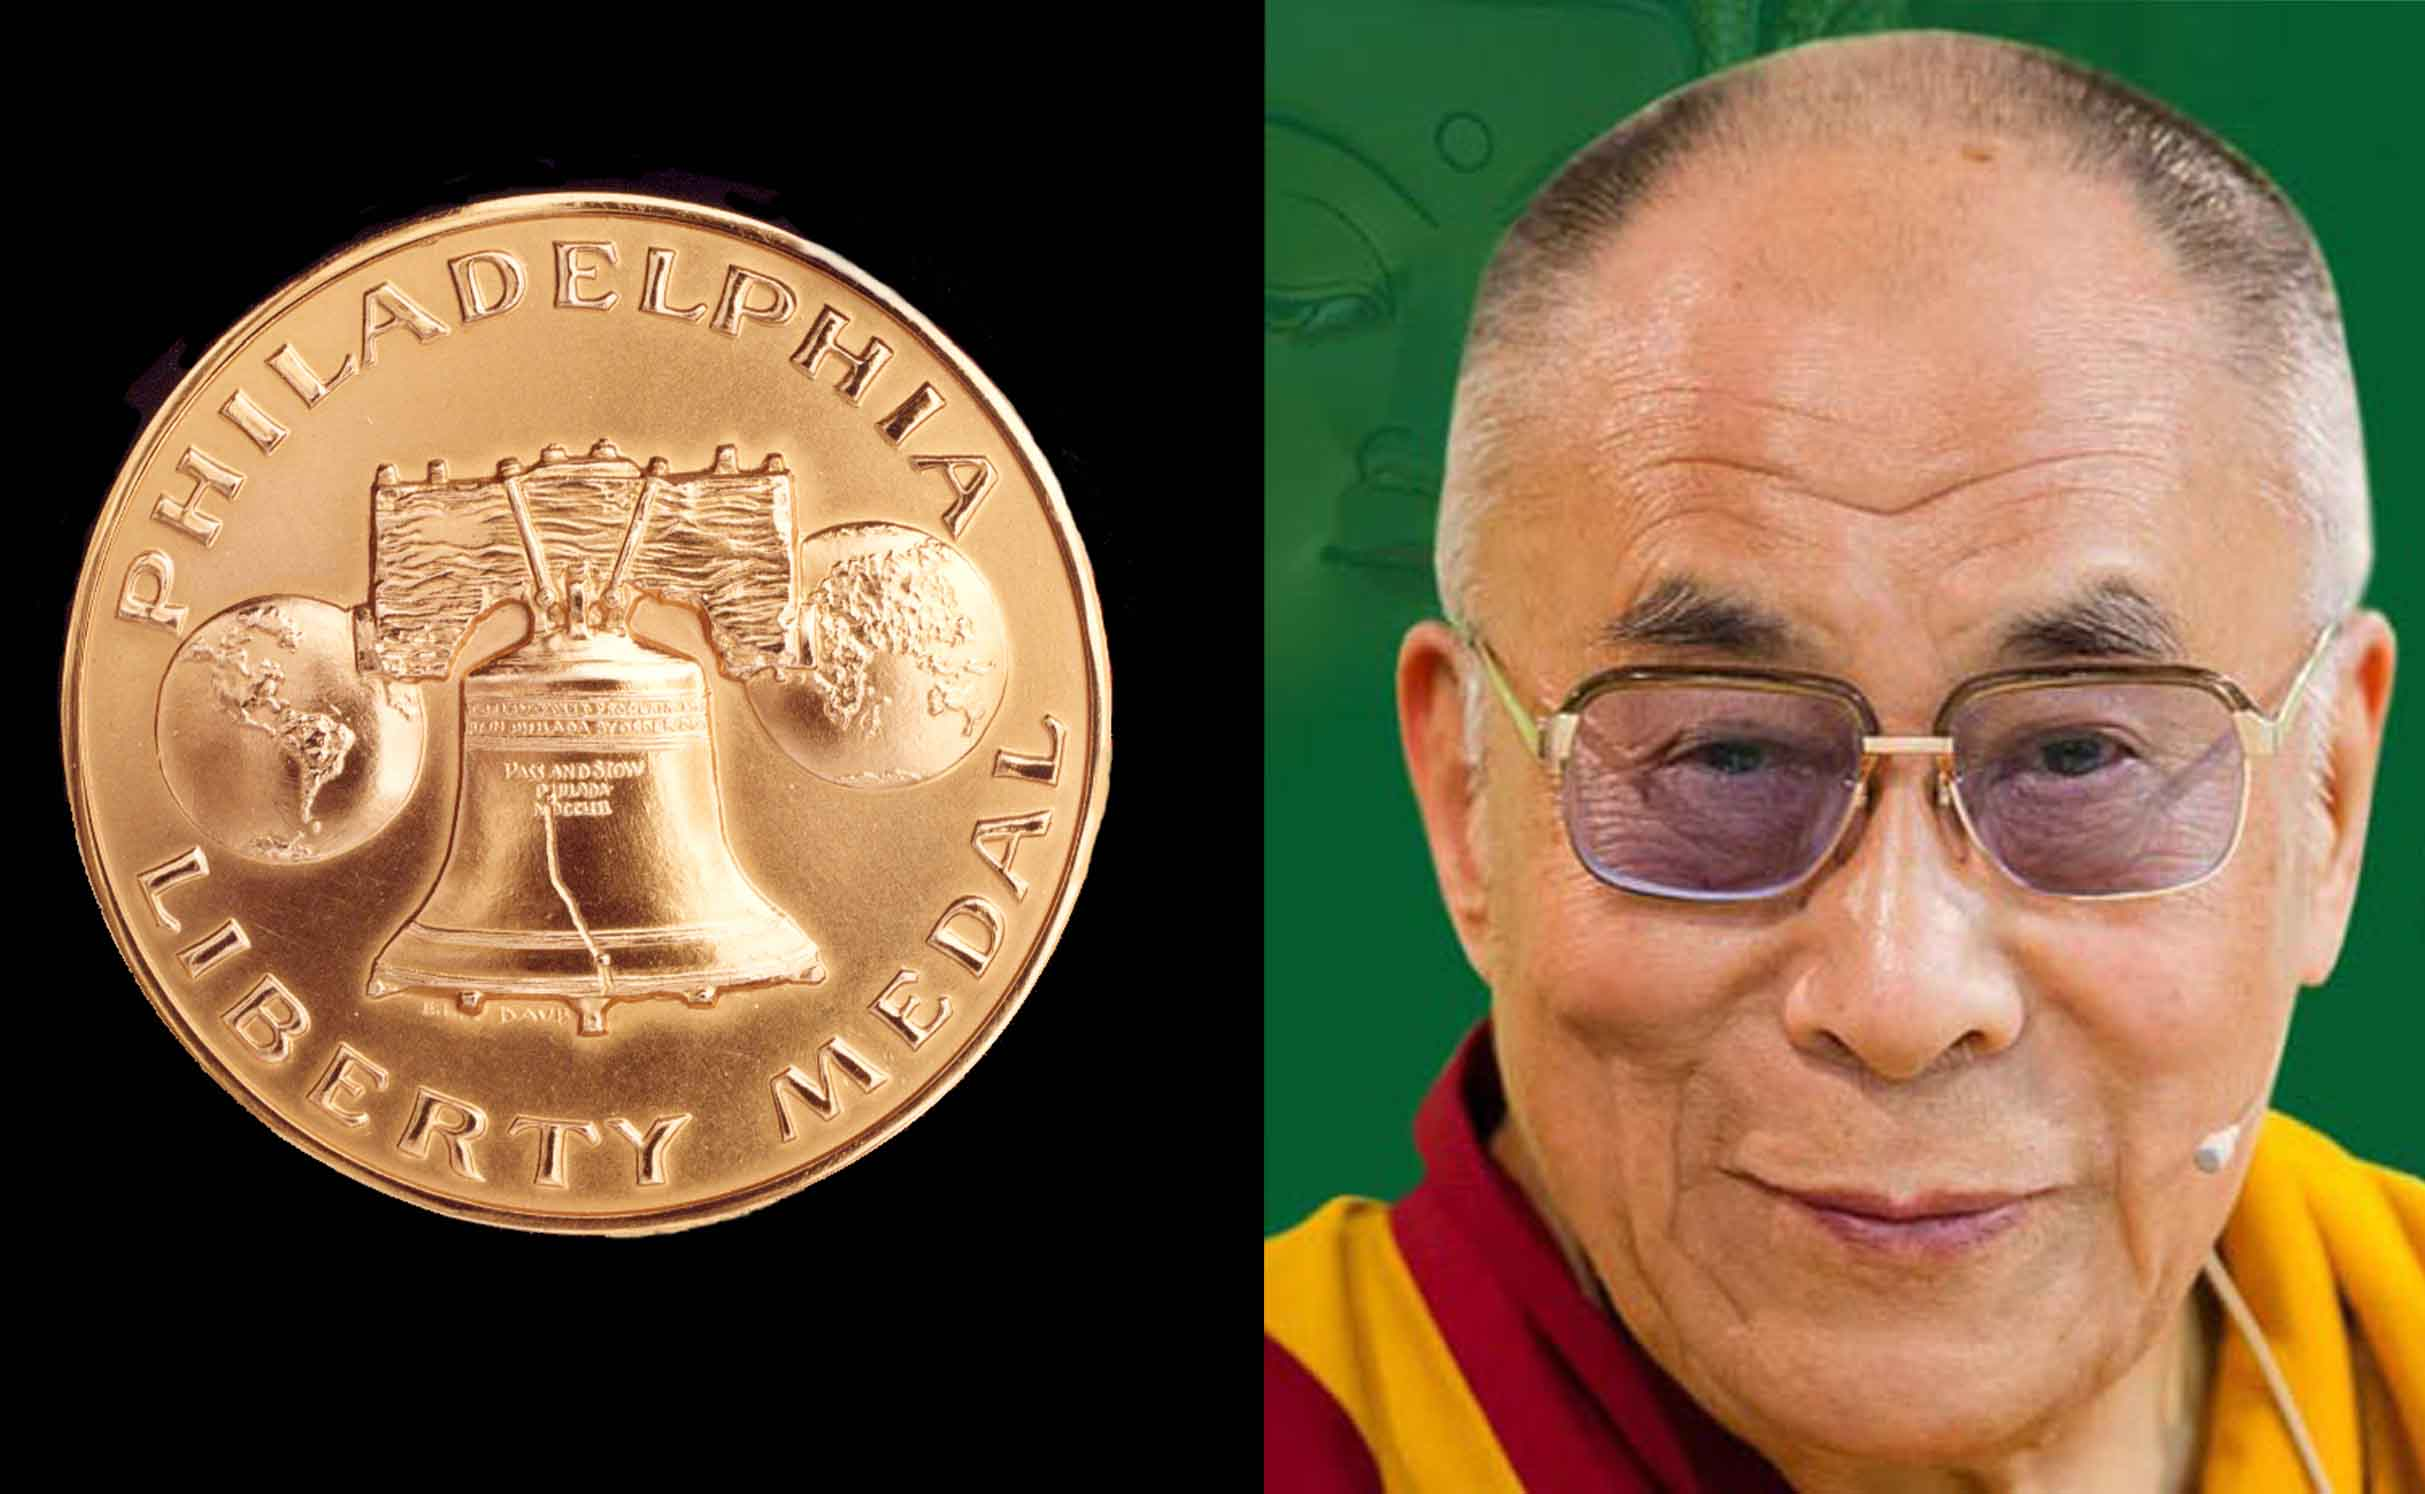 Tibet's exiled spiritual leader, the Dalai Lama, is to be presented the 2015 Liberty Medal of the National Constitution Center, Philadelphia, United States.